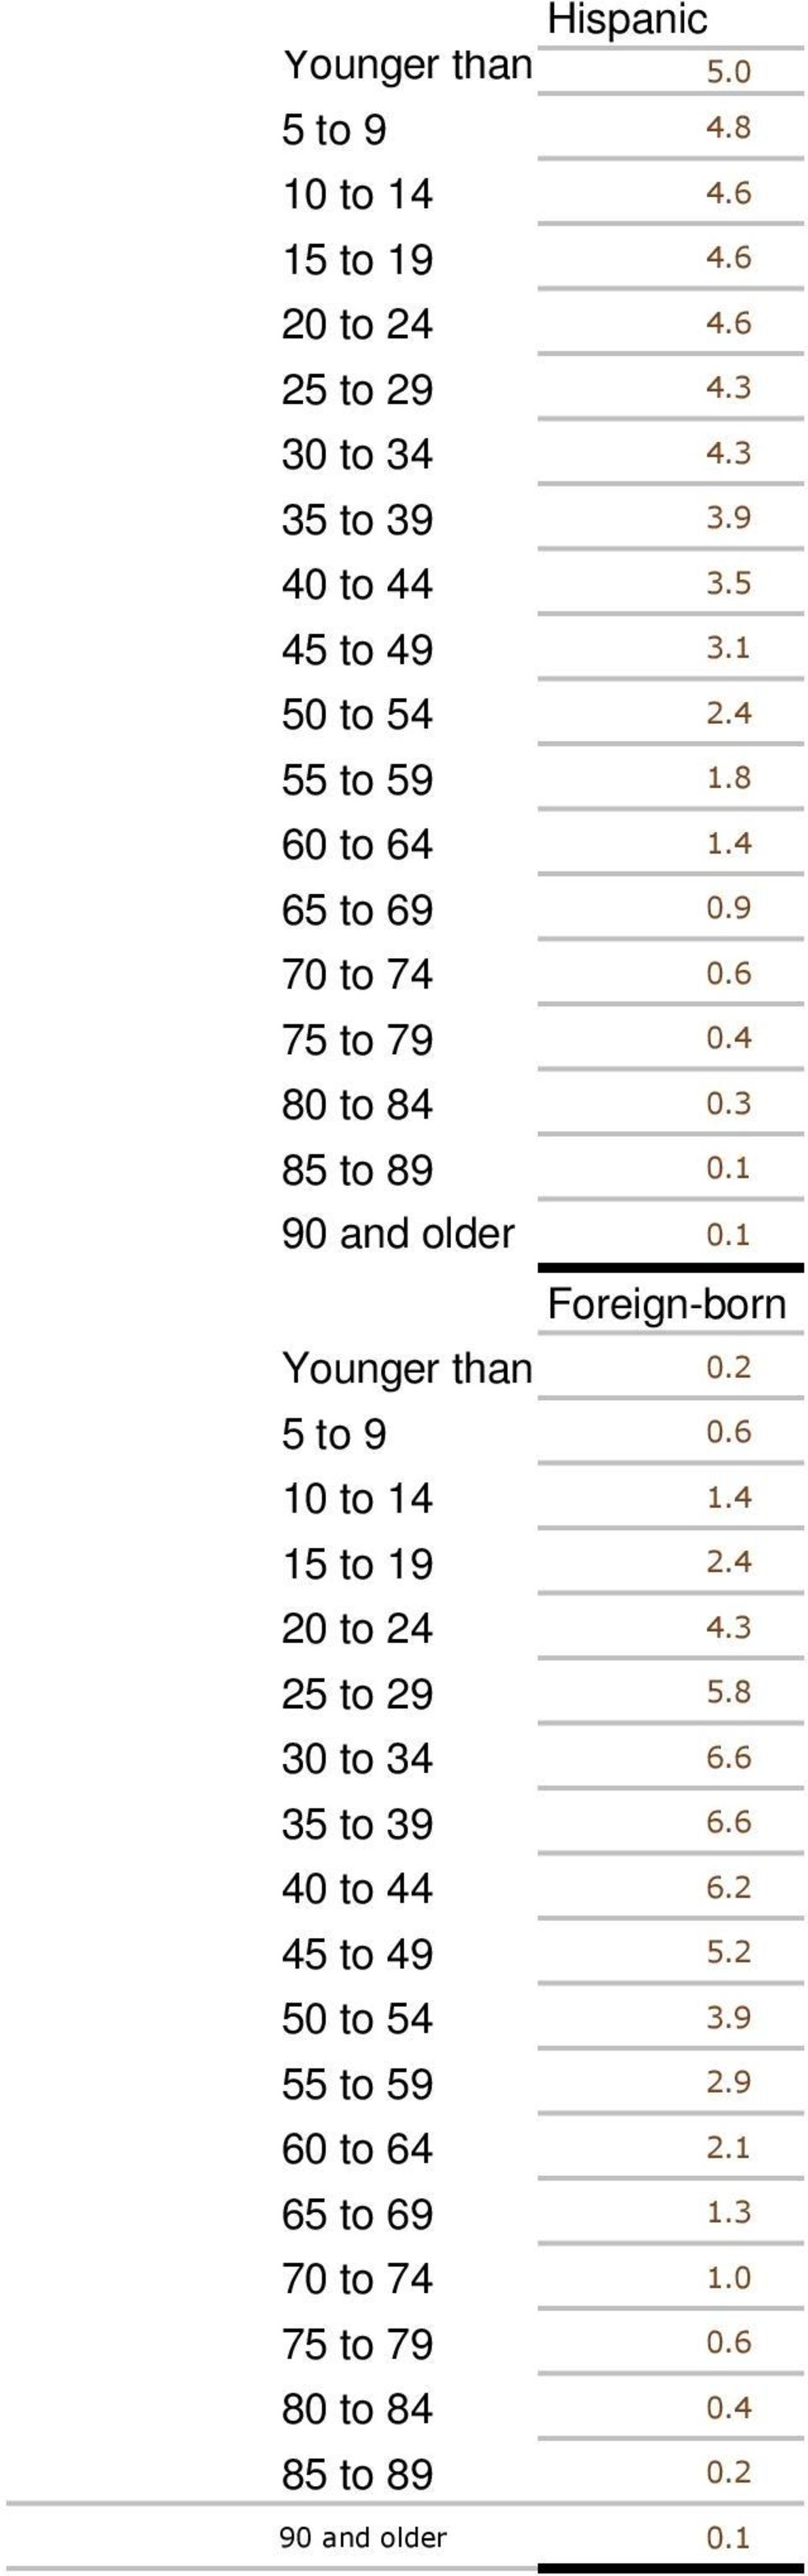 1 90 and older 0.1 Foreign-born Younger than 5 0.2 5 to 9 0.6 10 to 14 1.4 15 to 19 2.4 20 to 24 4.3 25 to 29 5.8 30 to 34 6.